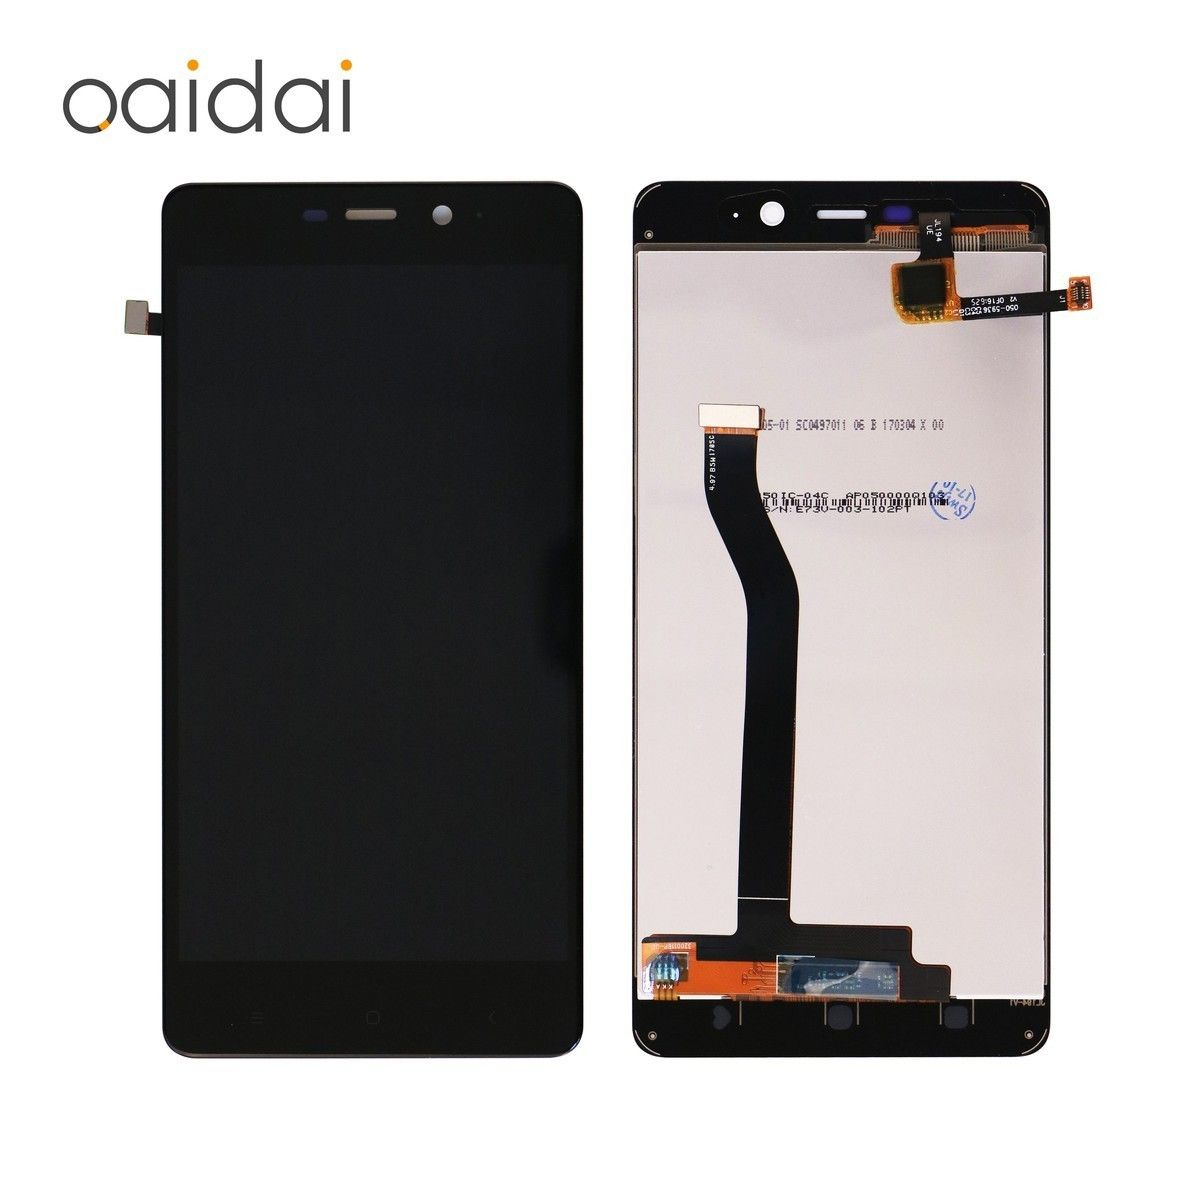 LCD Display Touch Screen For Xiaomi Redmi 4 Pro Prime Redmi 4Pro Redmi4 Pro Lcd Display Digitizer Assembly Parts 3GB / 32GB